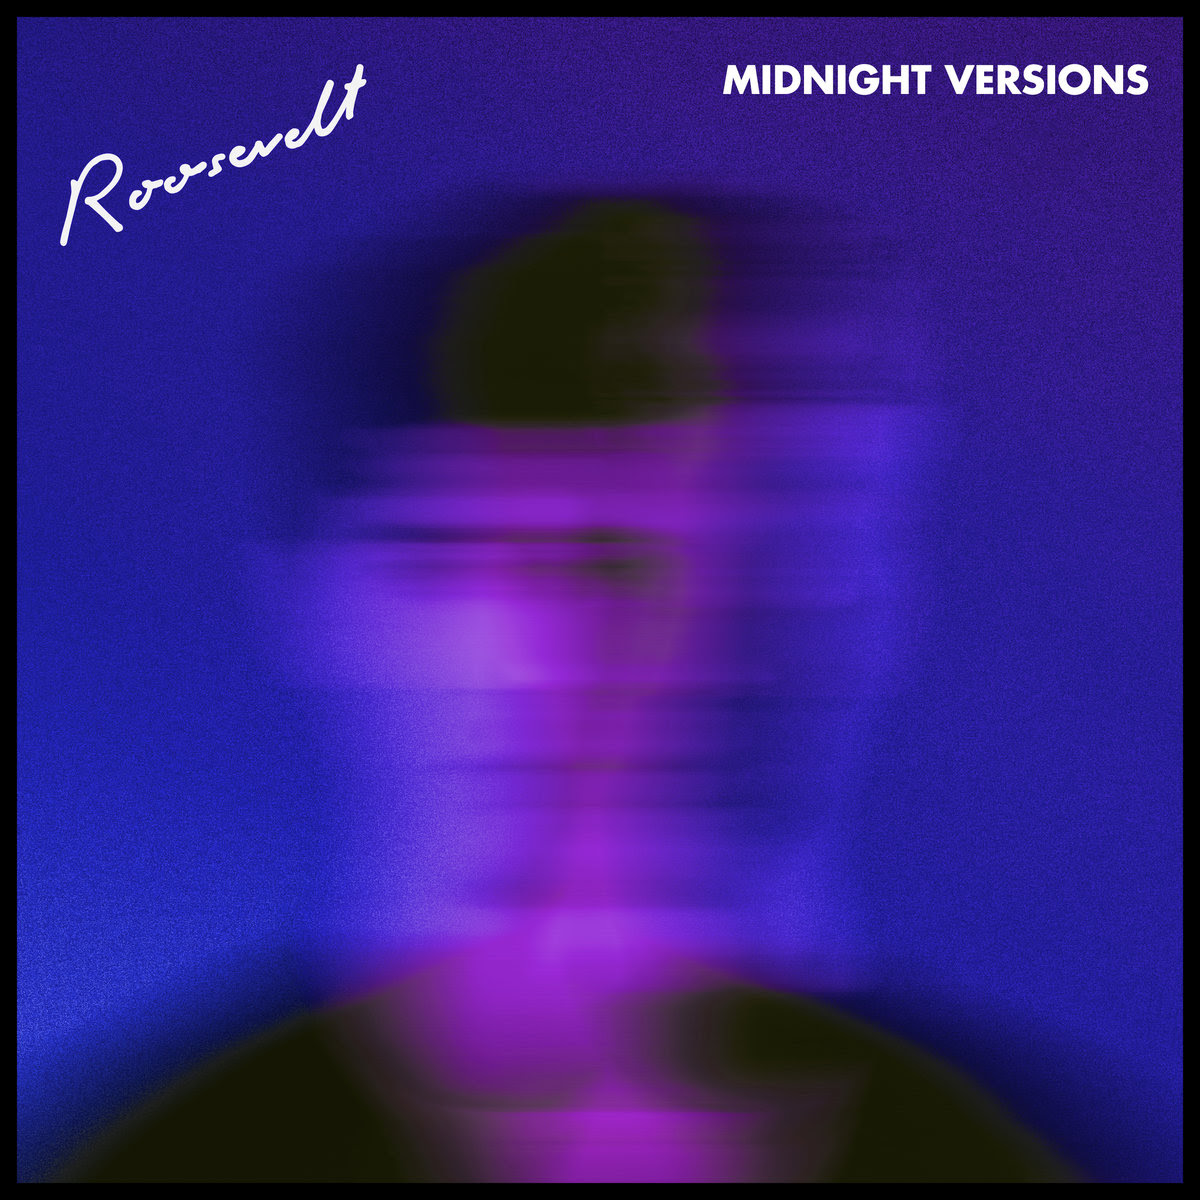 Roosevelt — Midnight Versions EP